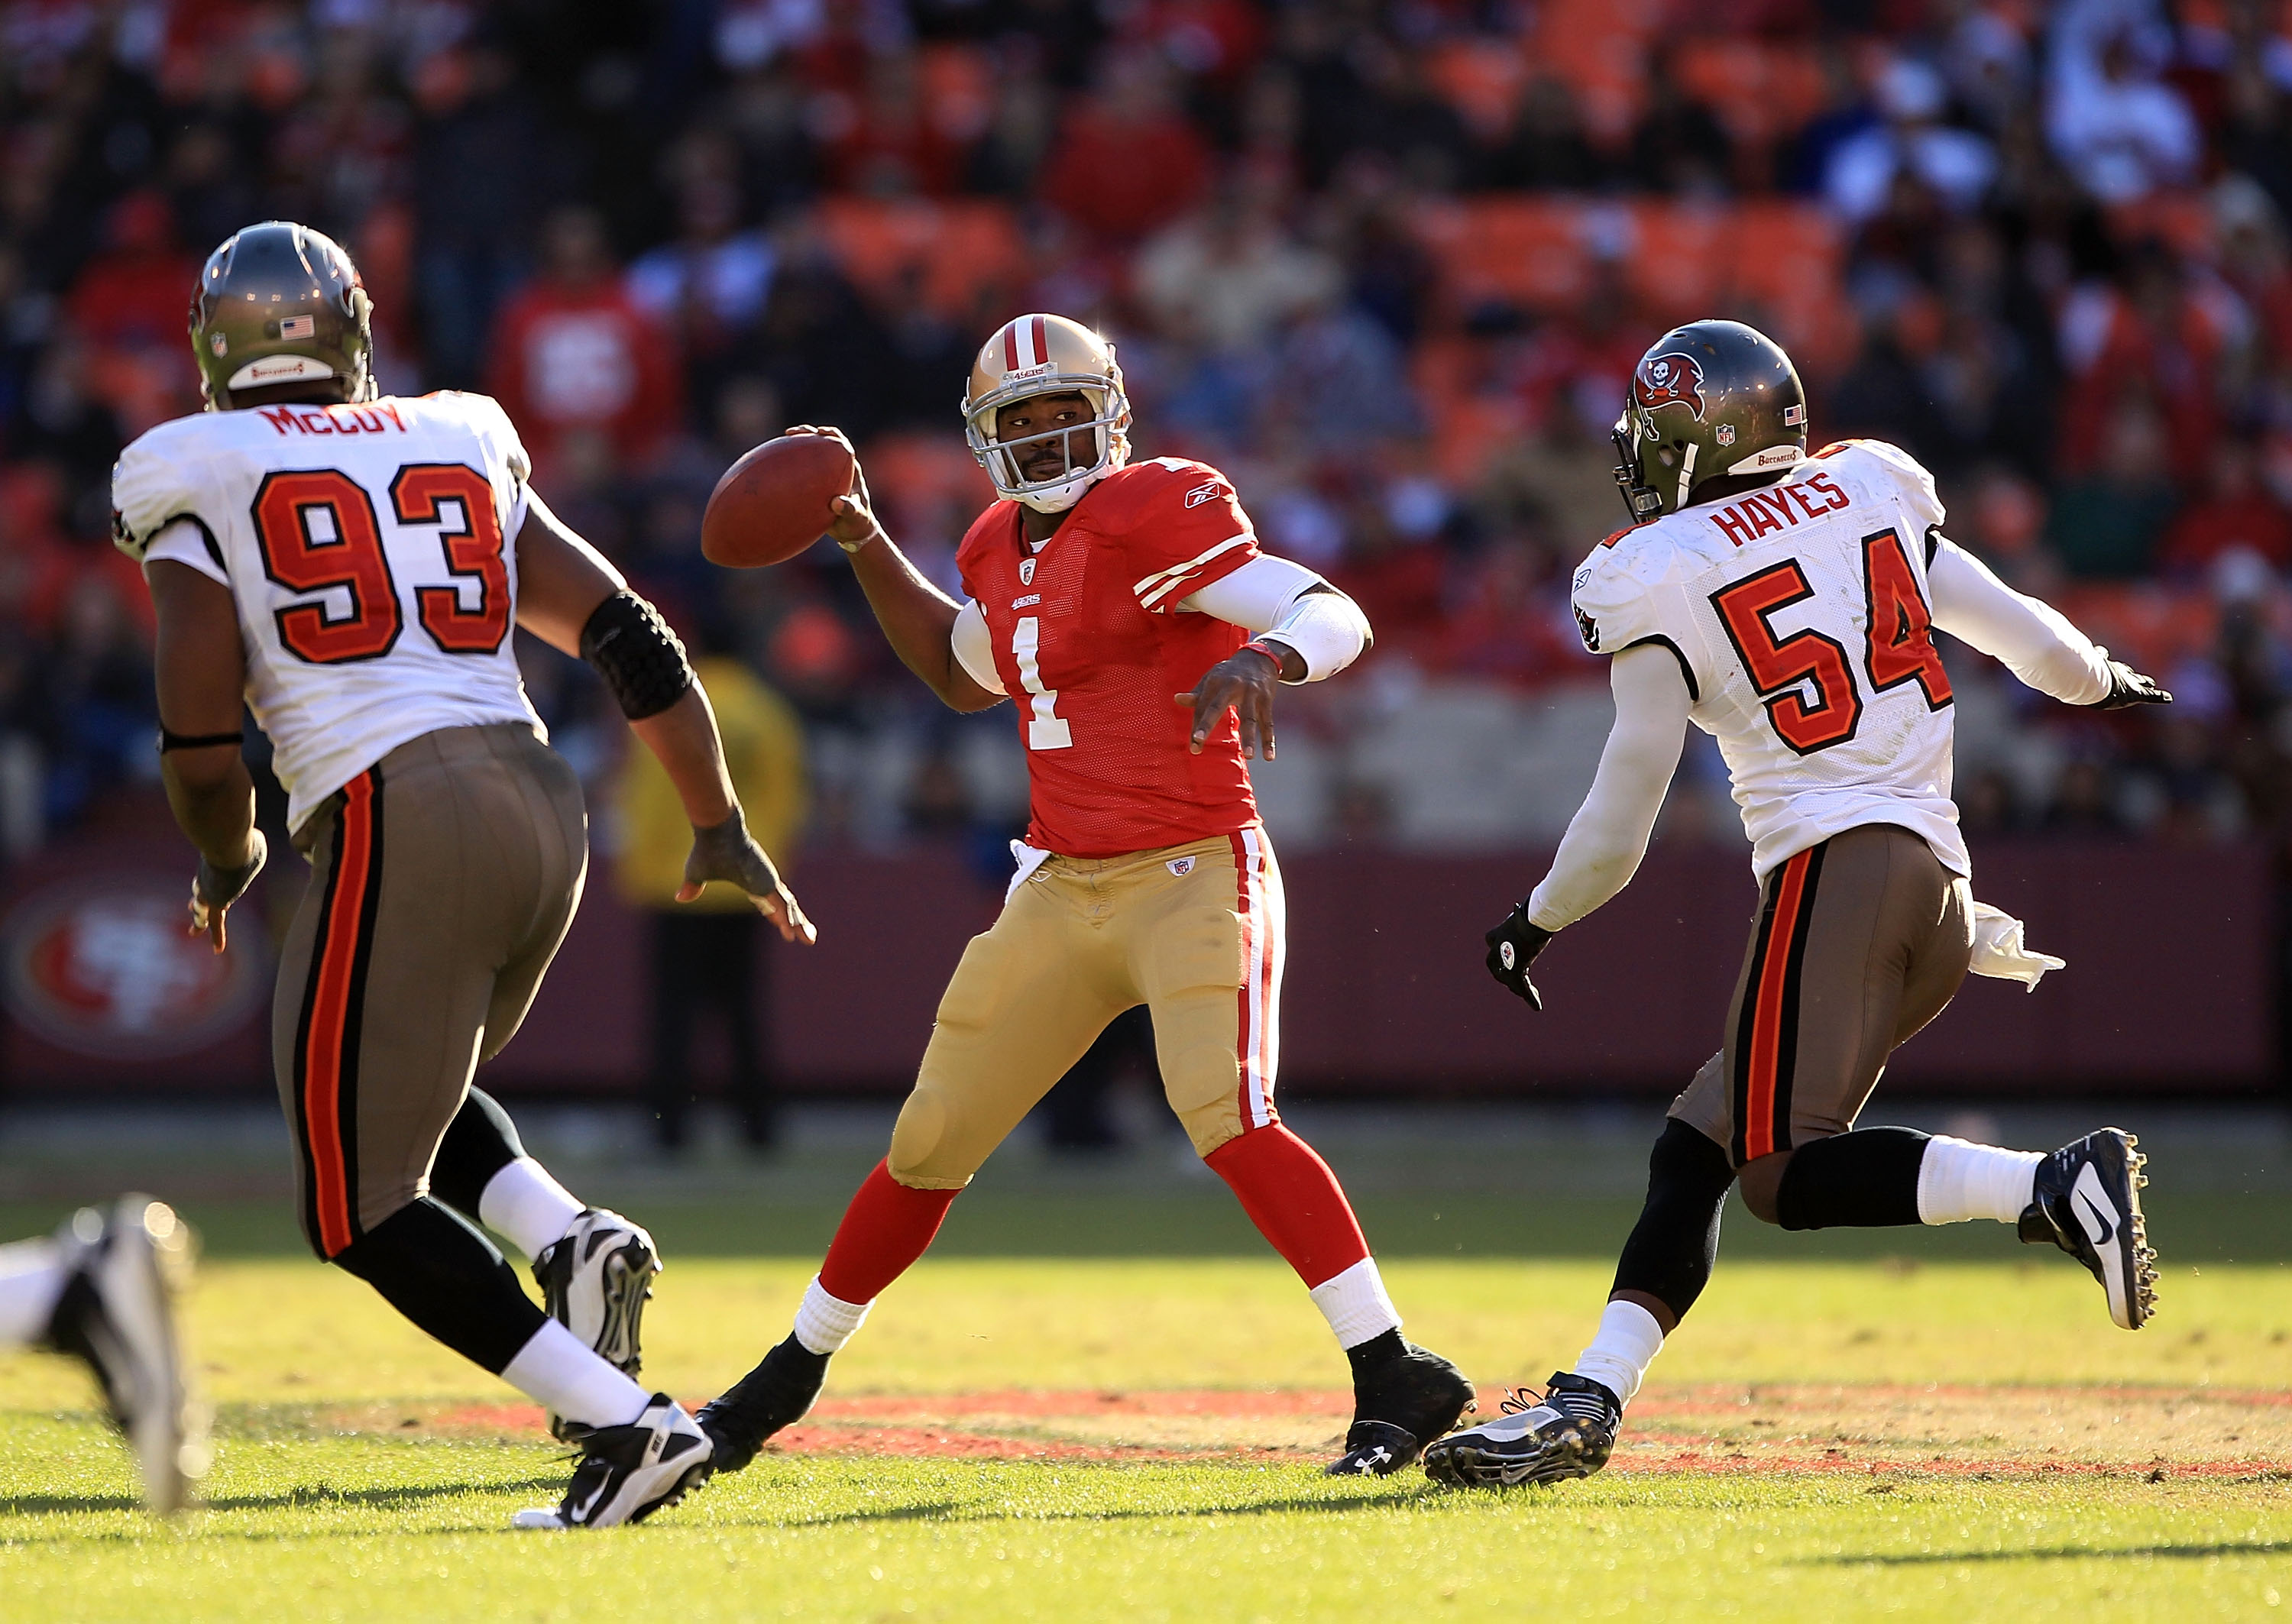 SAN FRANCISCO - NOVEMBER 21:  Troy Smith #1 of the San Francisco 49ers passes the ball against the Tampa Bay Buccaneers at Candlestick Park on November 21, 2010 in San Francisco, California.  (Photo by Ezra Shaw/Getty Images)